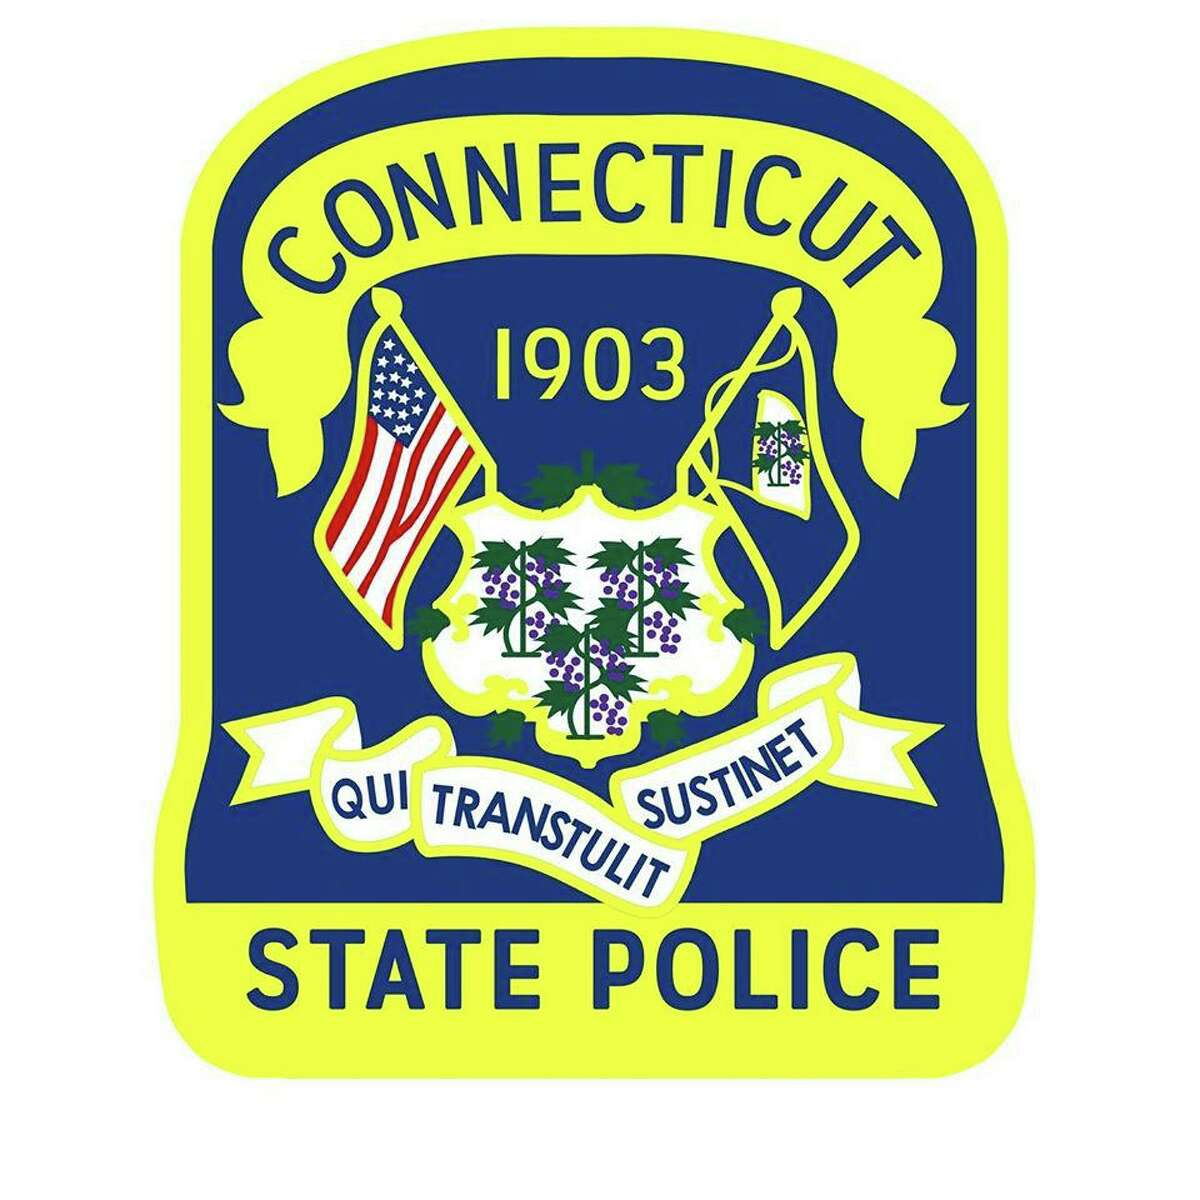 Northbound Route 8 is closed because of a three-vehicle crash, the state Department of Transportation said. he accident, reported at 12:04 p.m., has shut down the northbound lanes between exits 5 and 8 in Bridgeport.